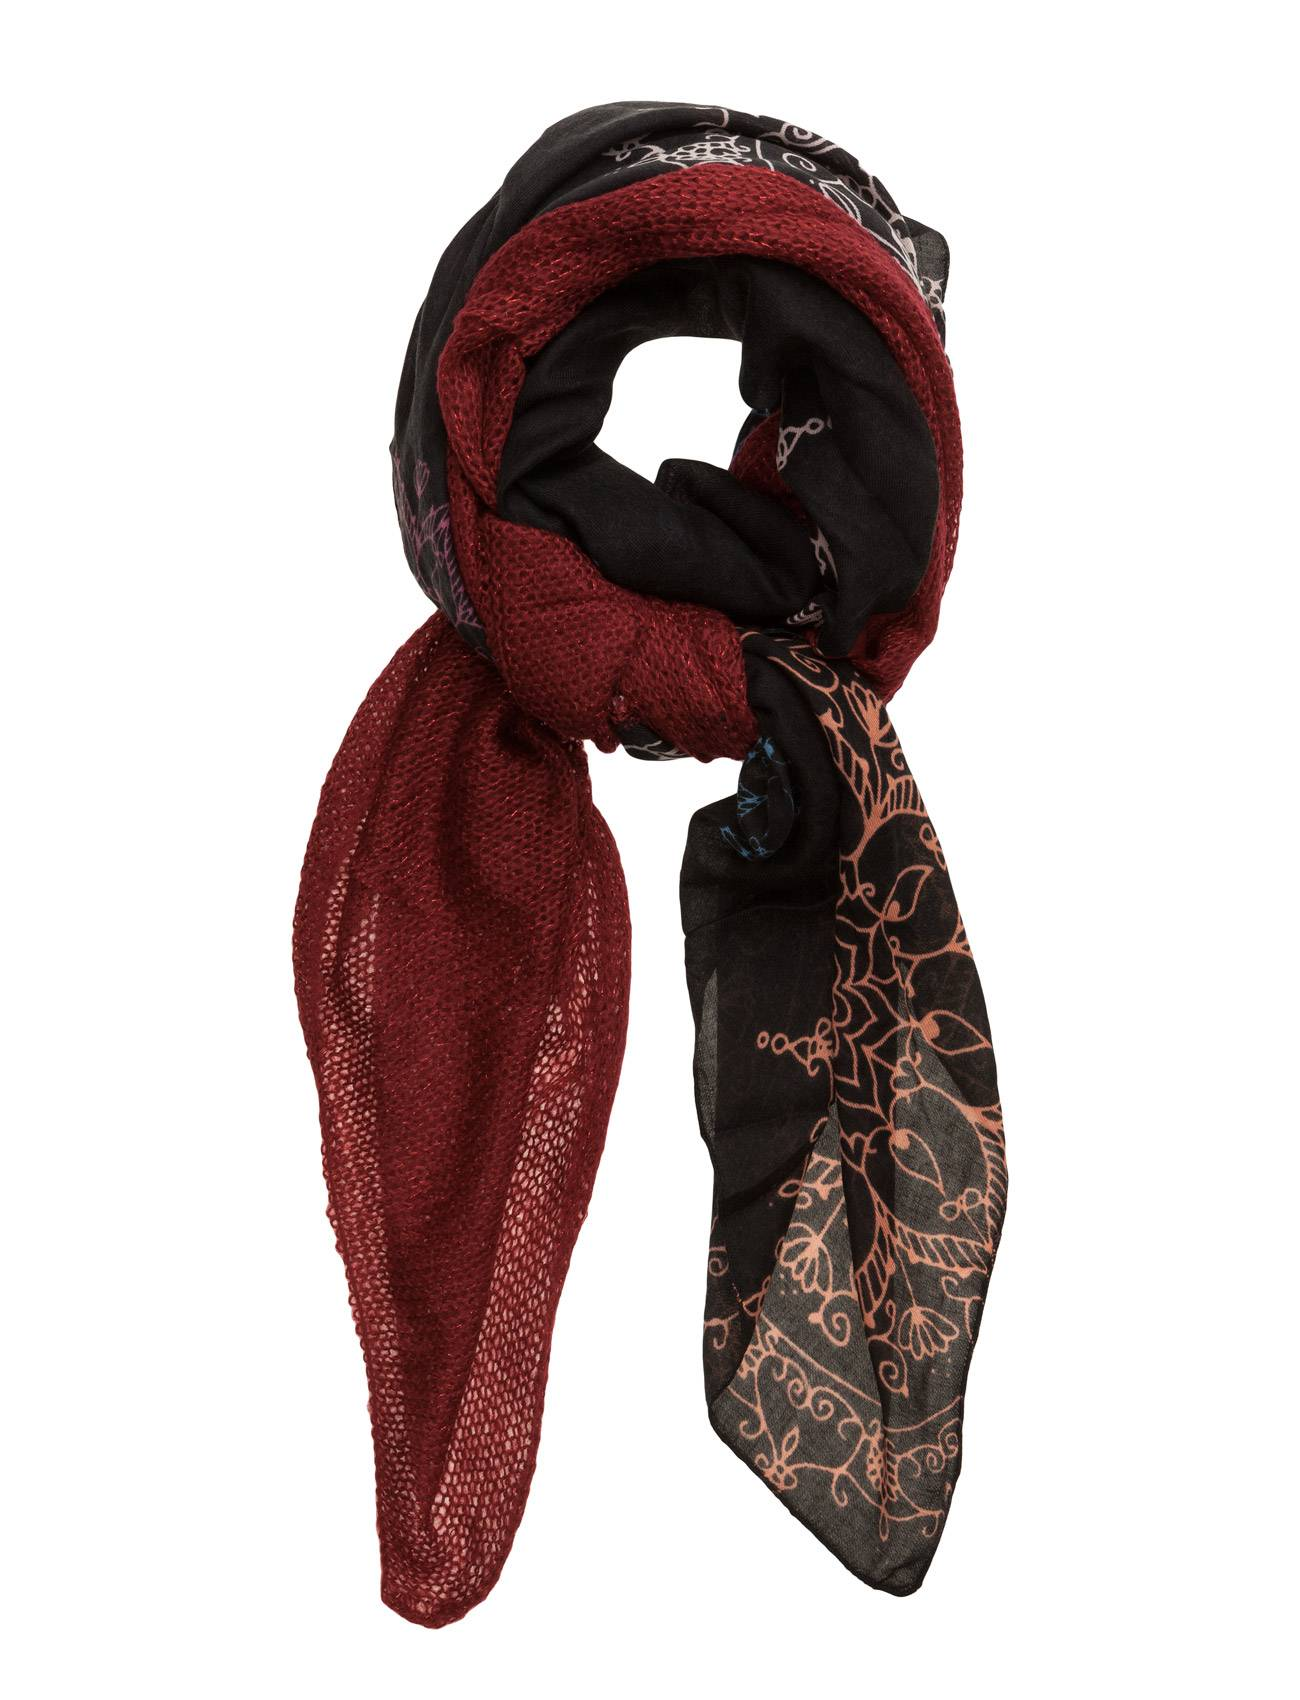 Desigual Accessories Foulard Mixto Bicolor